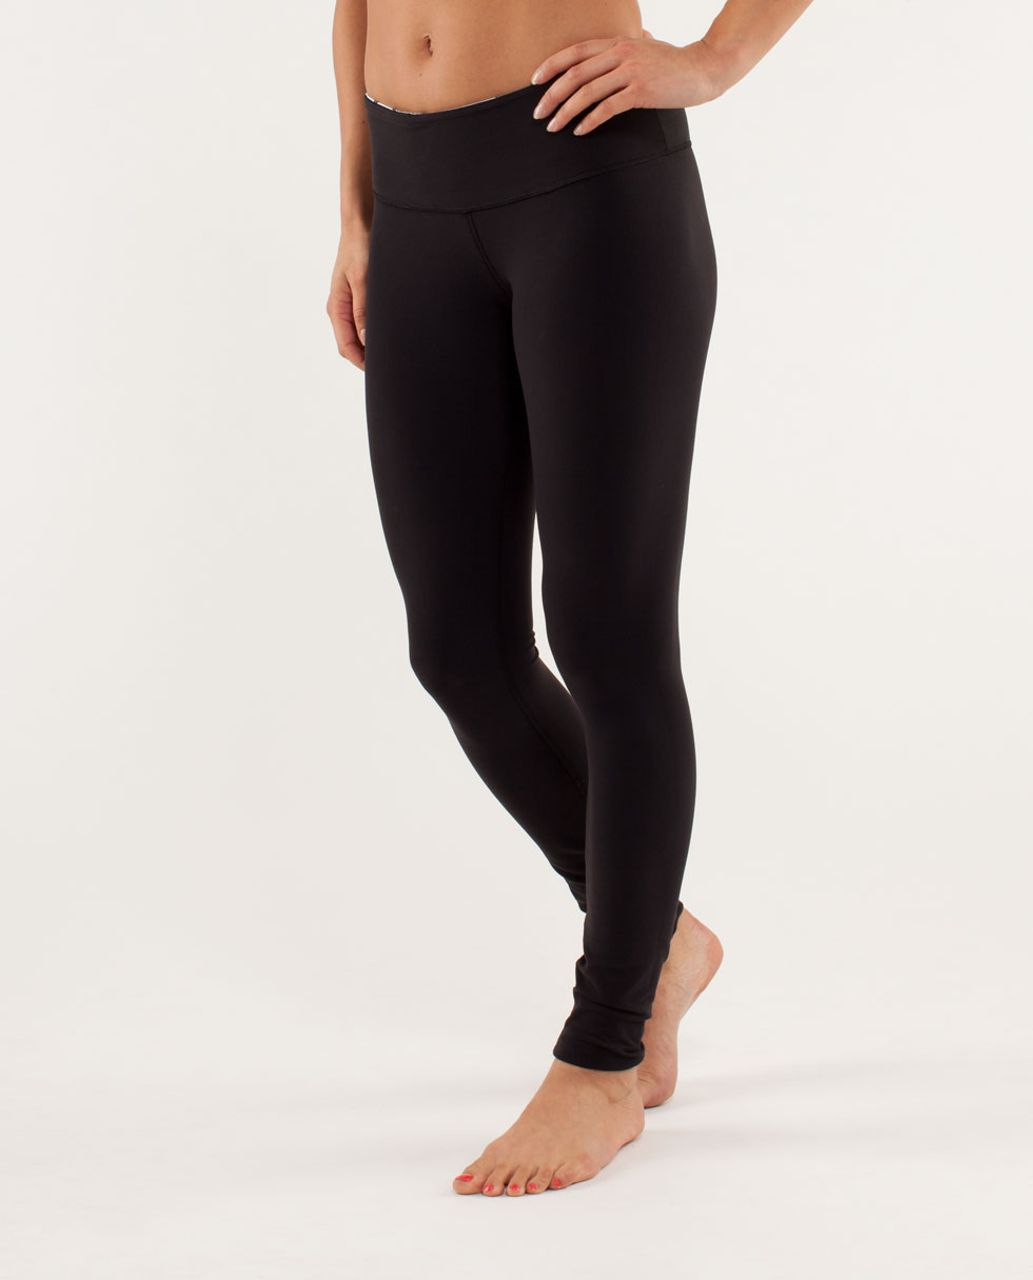 Lululemon Wunder Under Pant - Black /  Quilting Winter 12